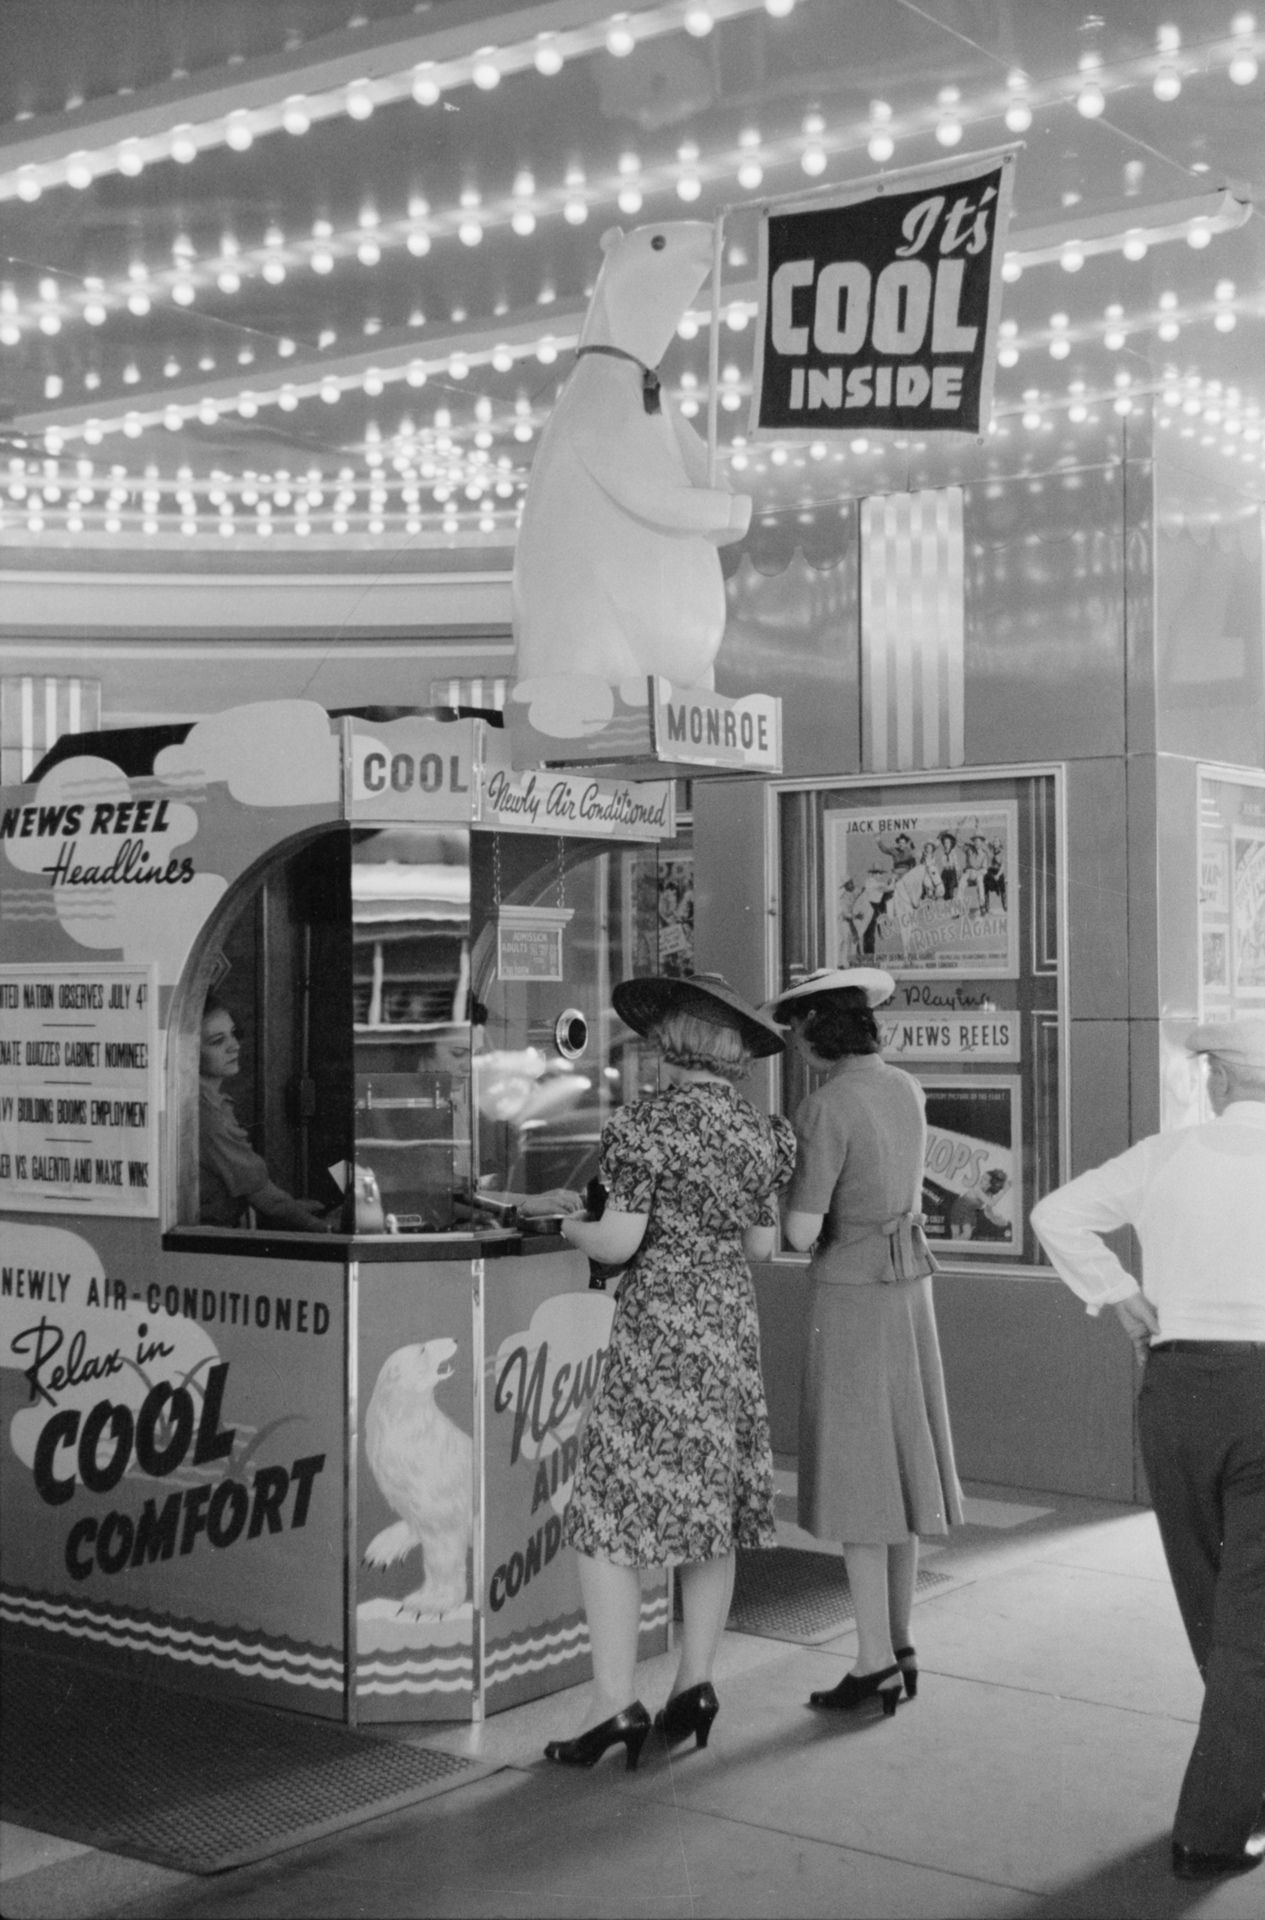 movie theater in 1940 with that newfangled air conditioning